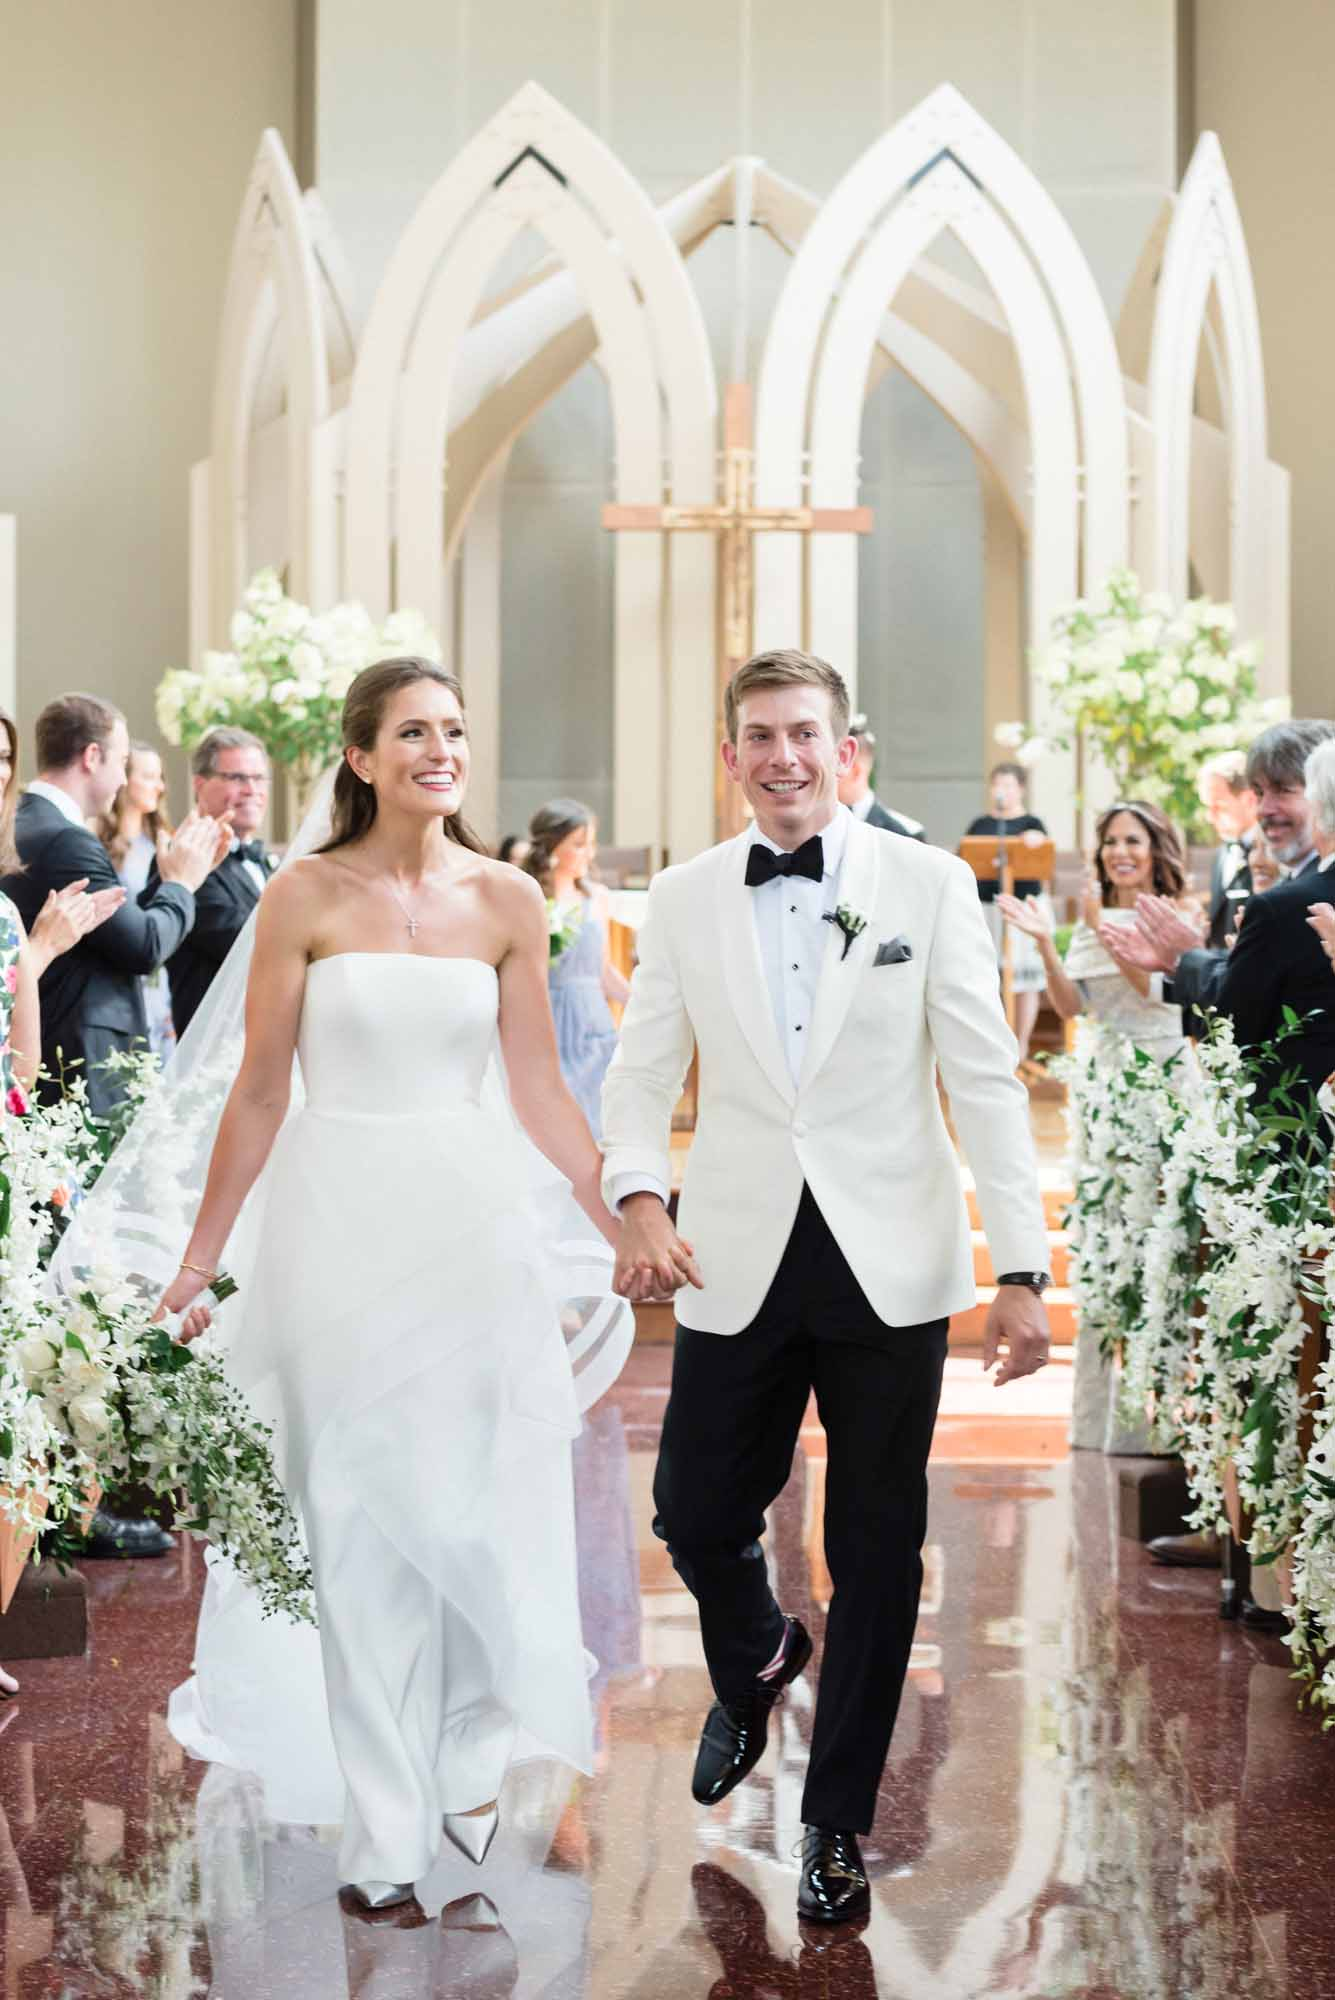 Wedding couple walking down church aisle decorated in white dendrobium orchids